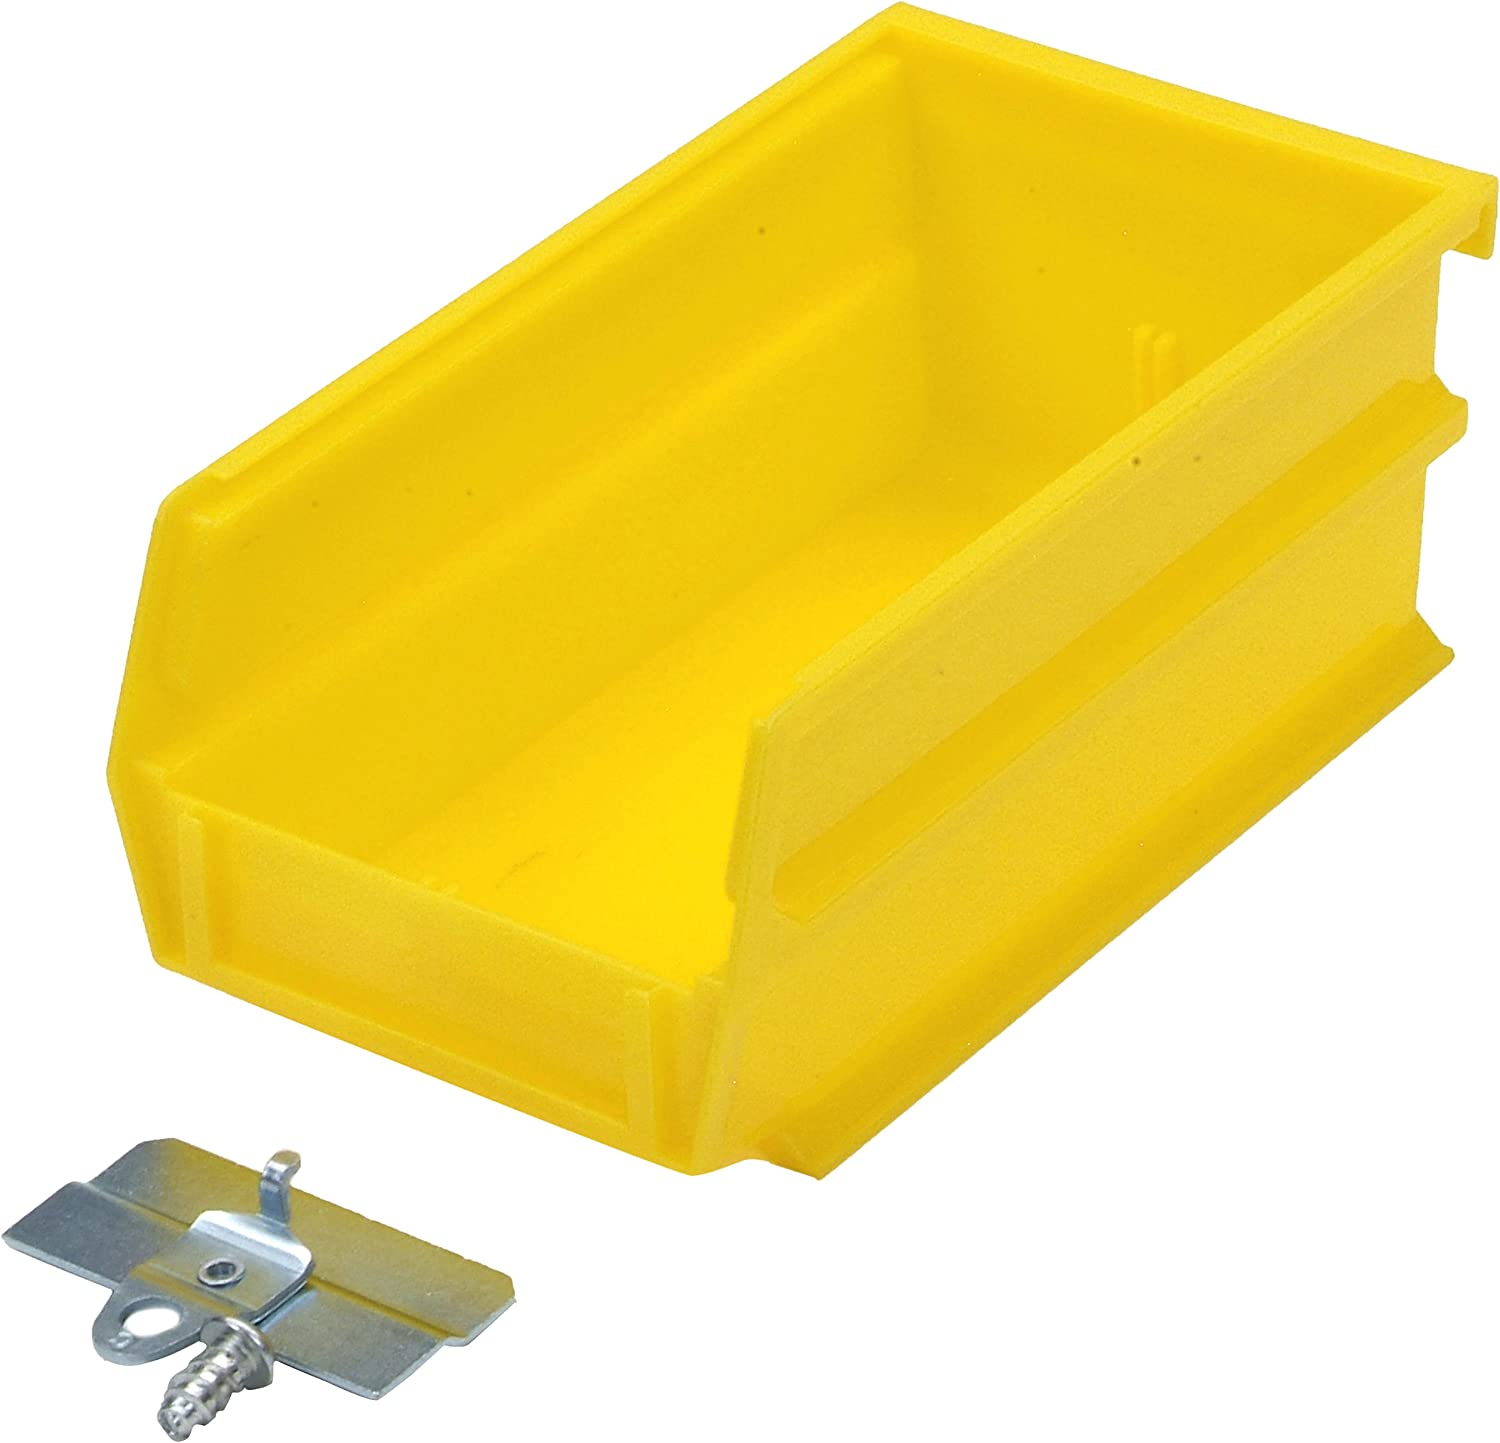 Triton Products Bk 220 Locbin Binkit Hanging Bin And Binclip Kits 7 3 8 Inch L By 4 1 8 Inch W By 3 Inch H Yellow Polypropylene 24 Count Home Kitchen Amazon Com